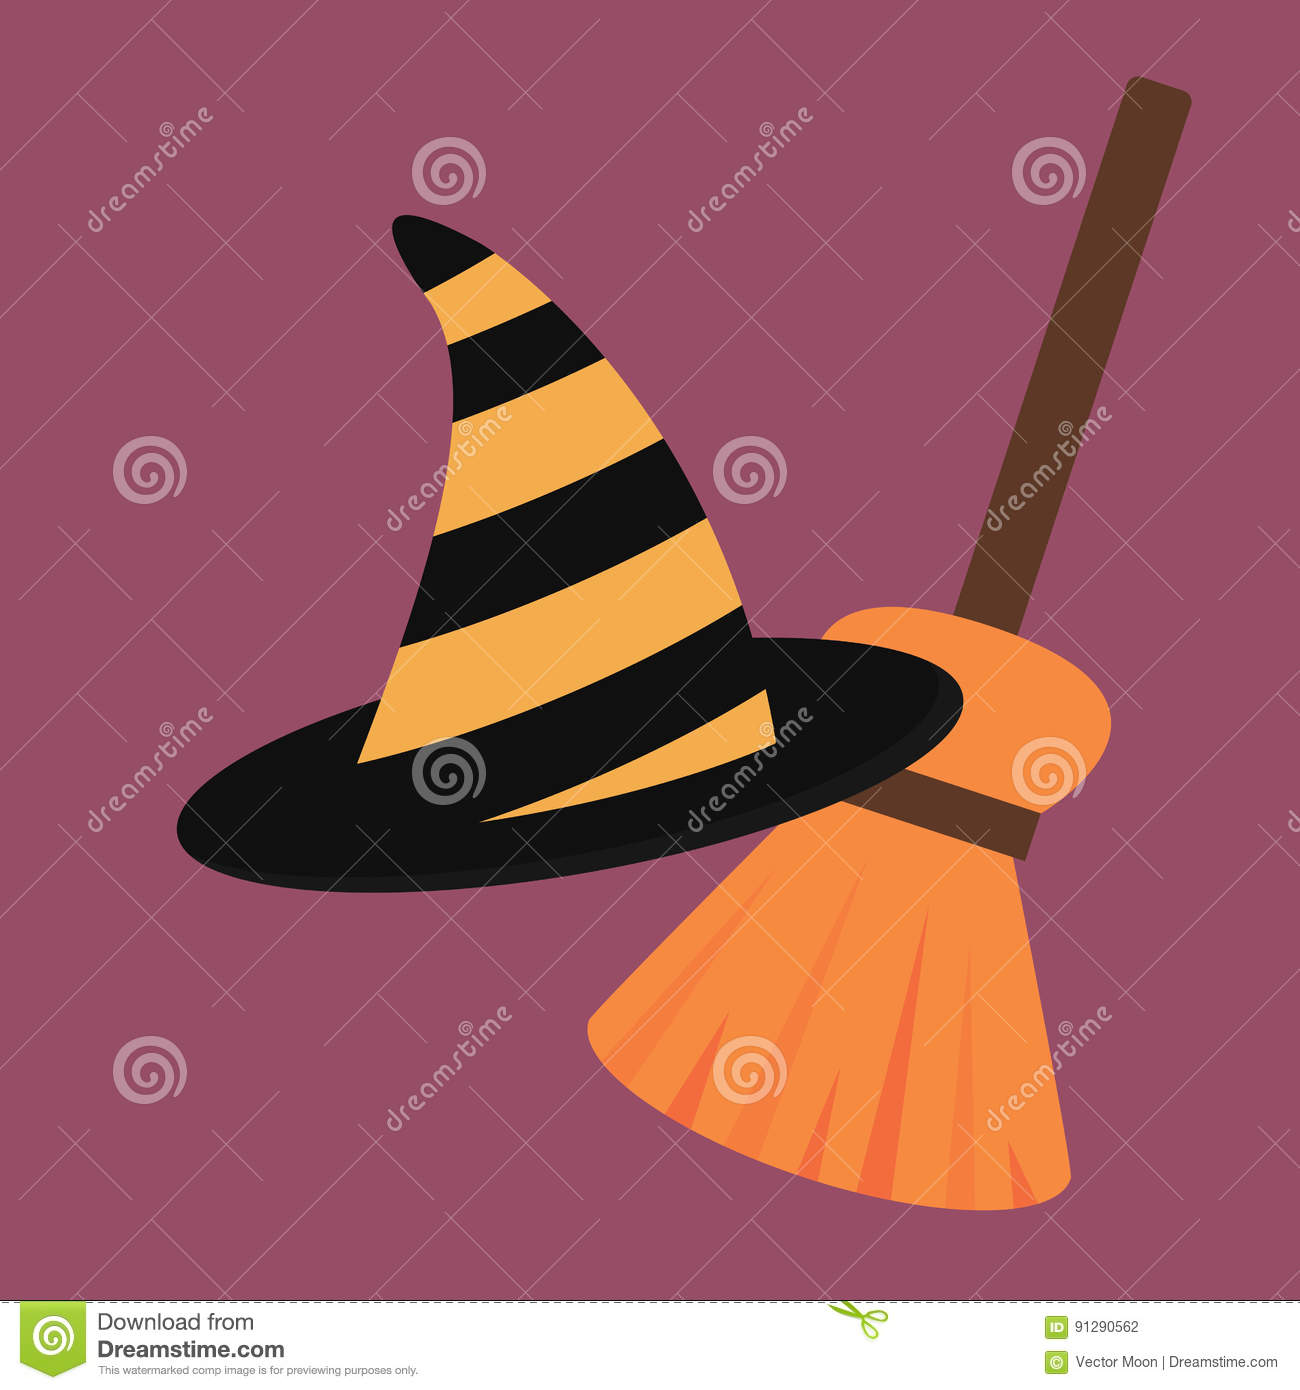 cartoon halloween witch hat antasy scary witchcraft traditional